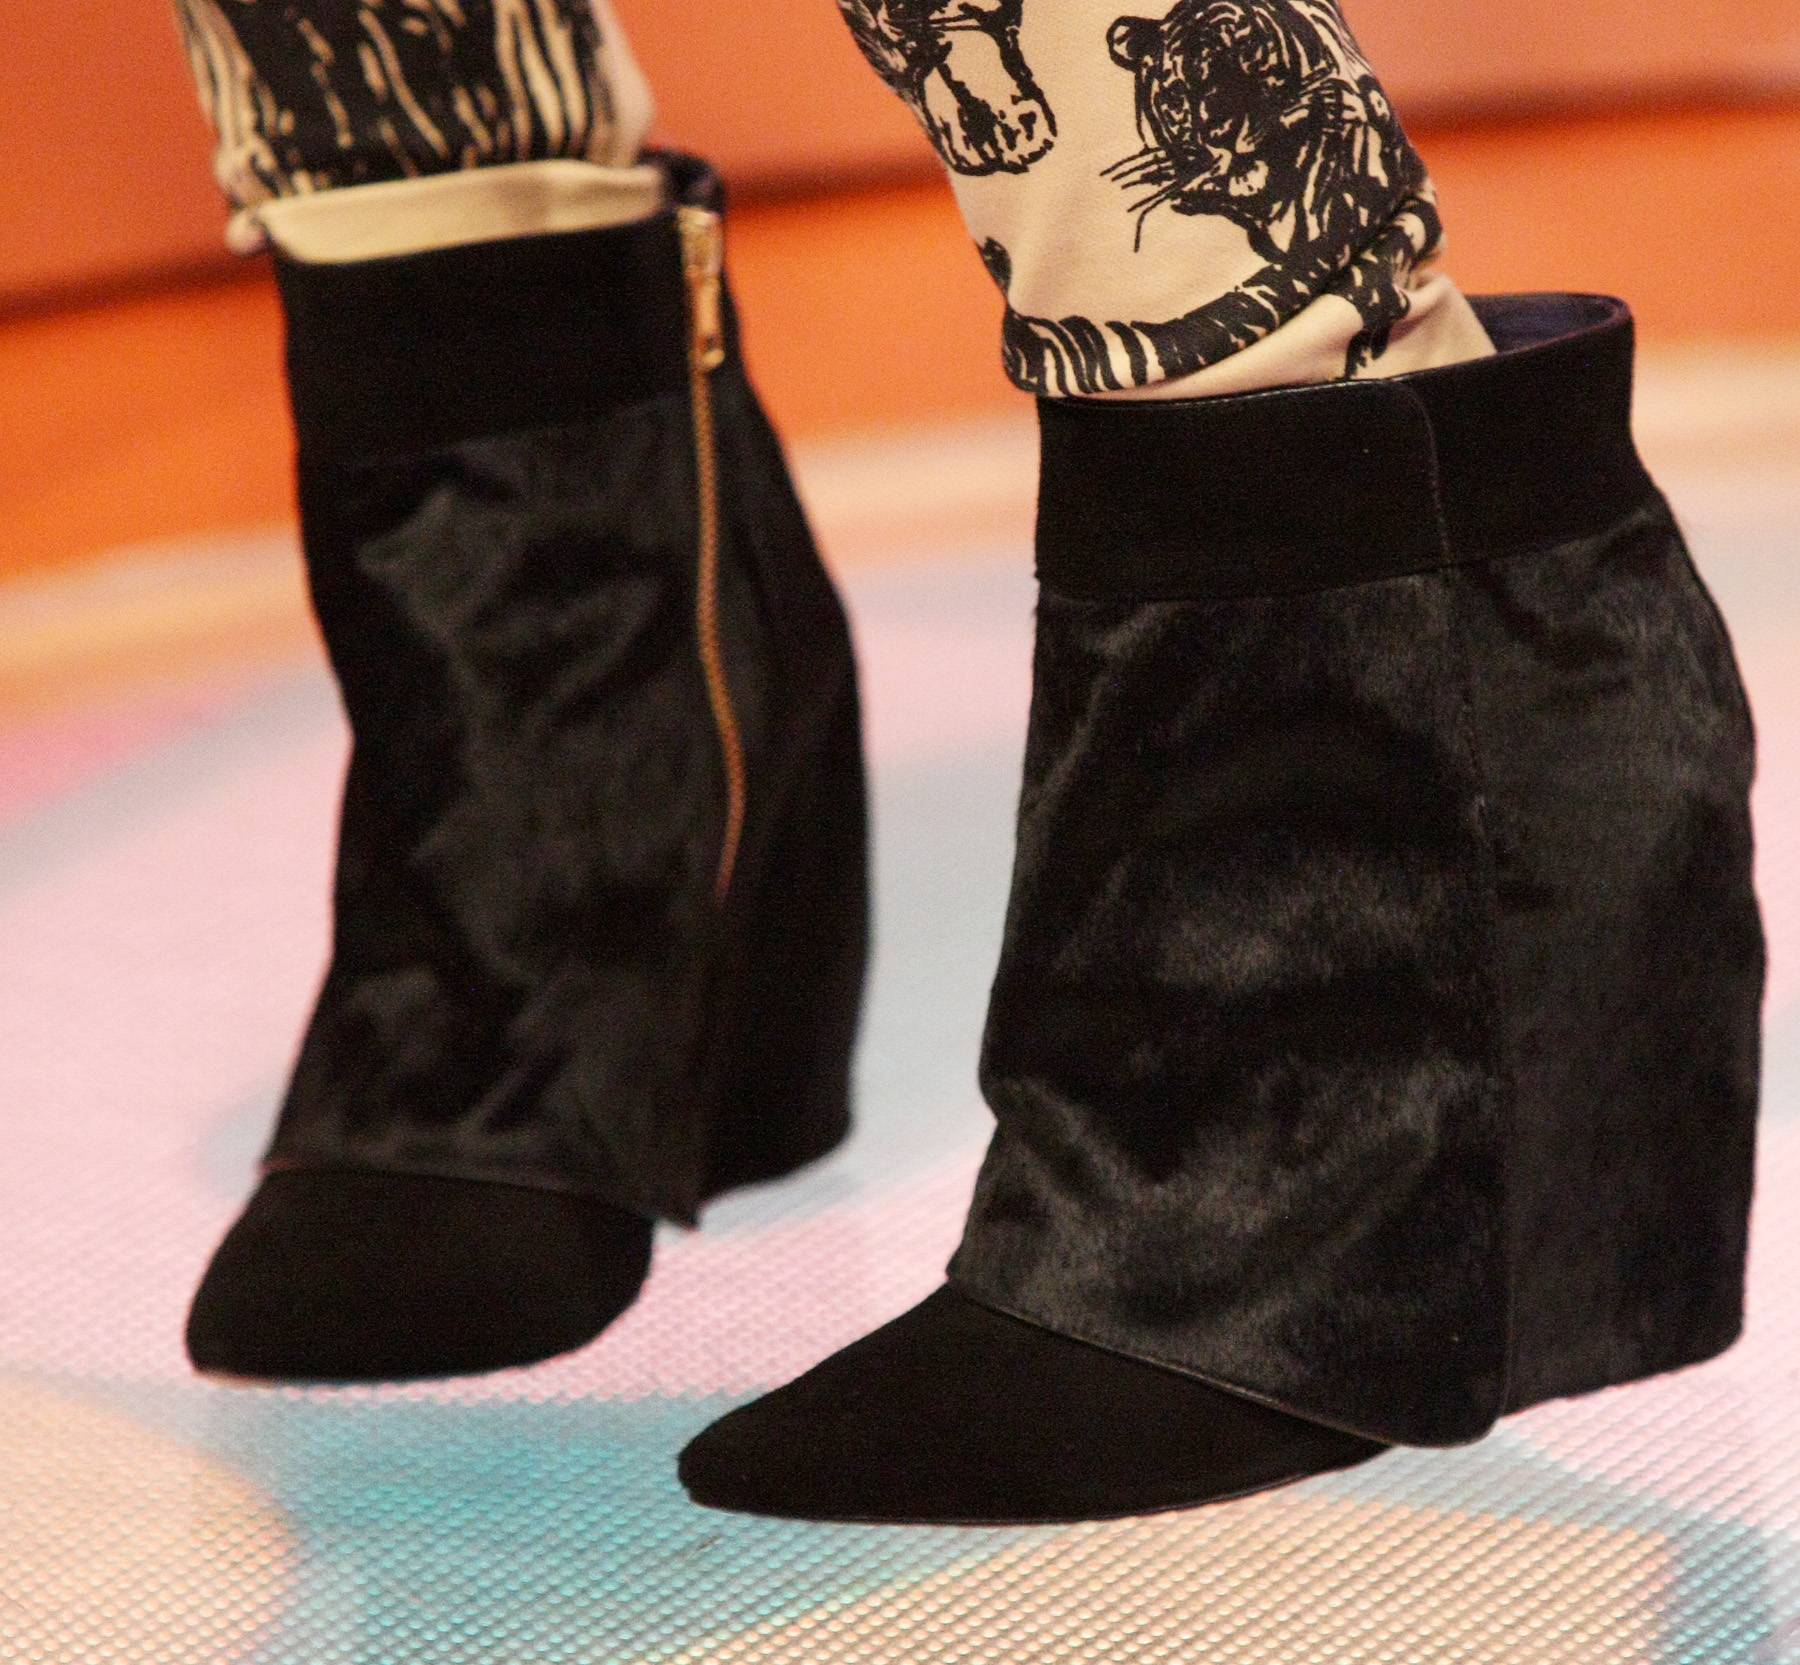 Leg Warmers - Angela Simmons rocks some boots that look pretty warm while on the set of 106. (Photo: Bennett Raglin/BET/Getty Images for BET)